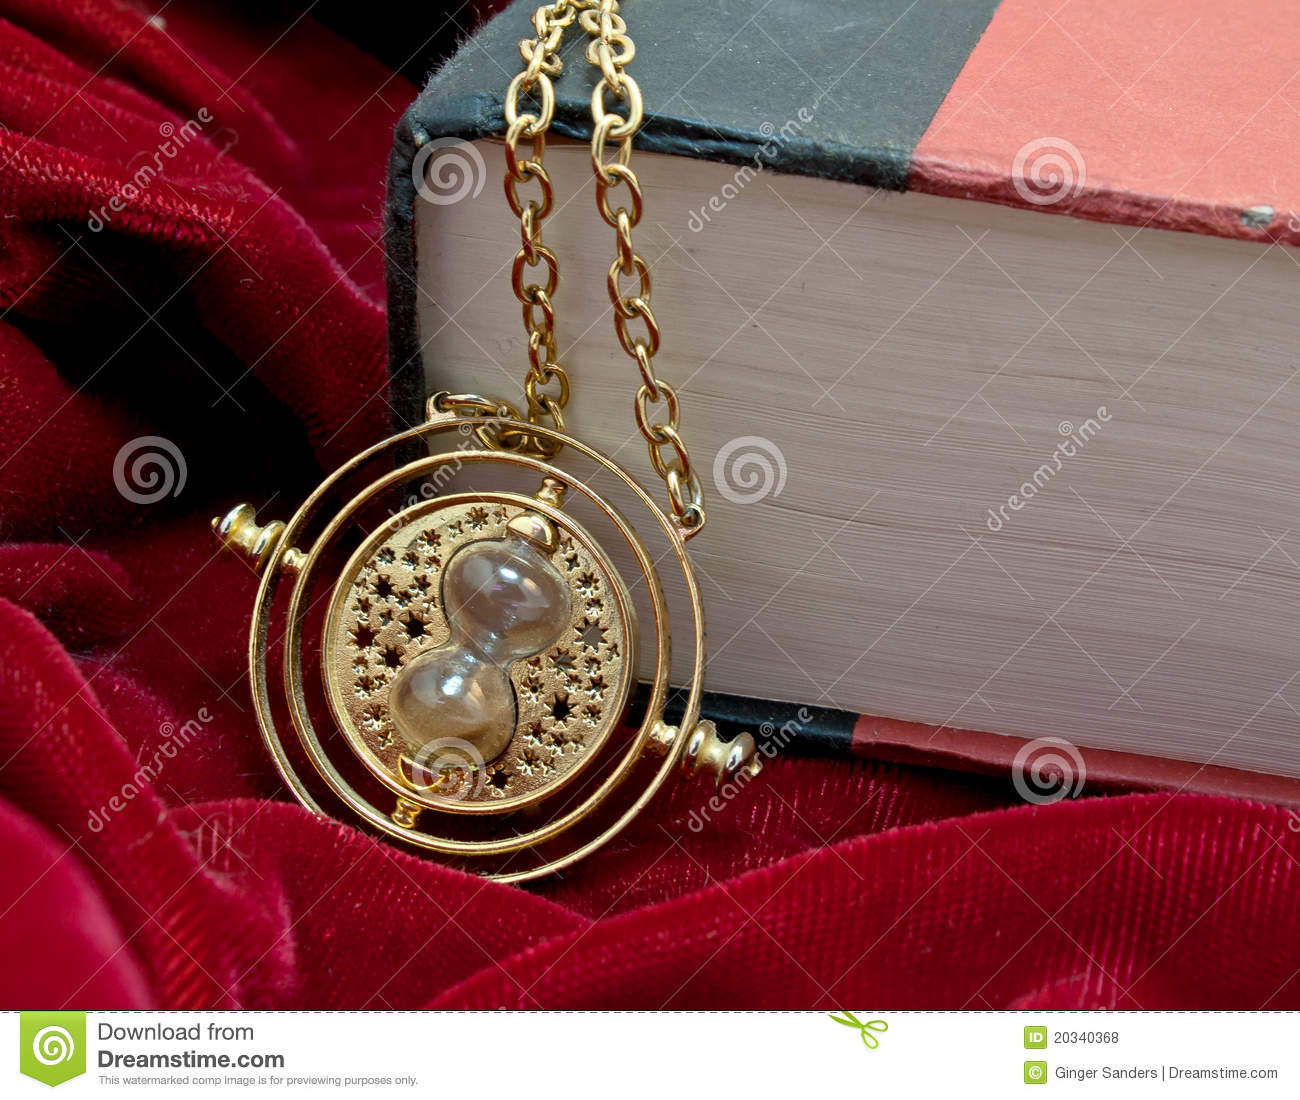 Time Turner Hour Glass Necklace And Book